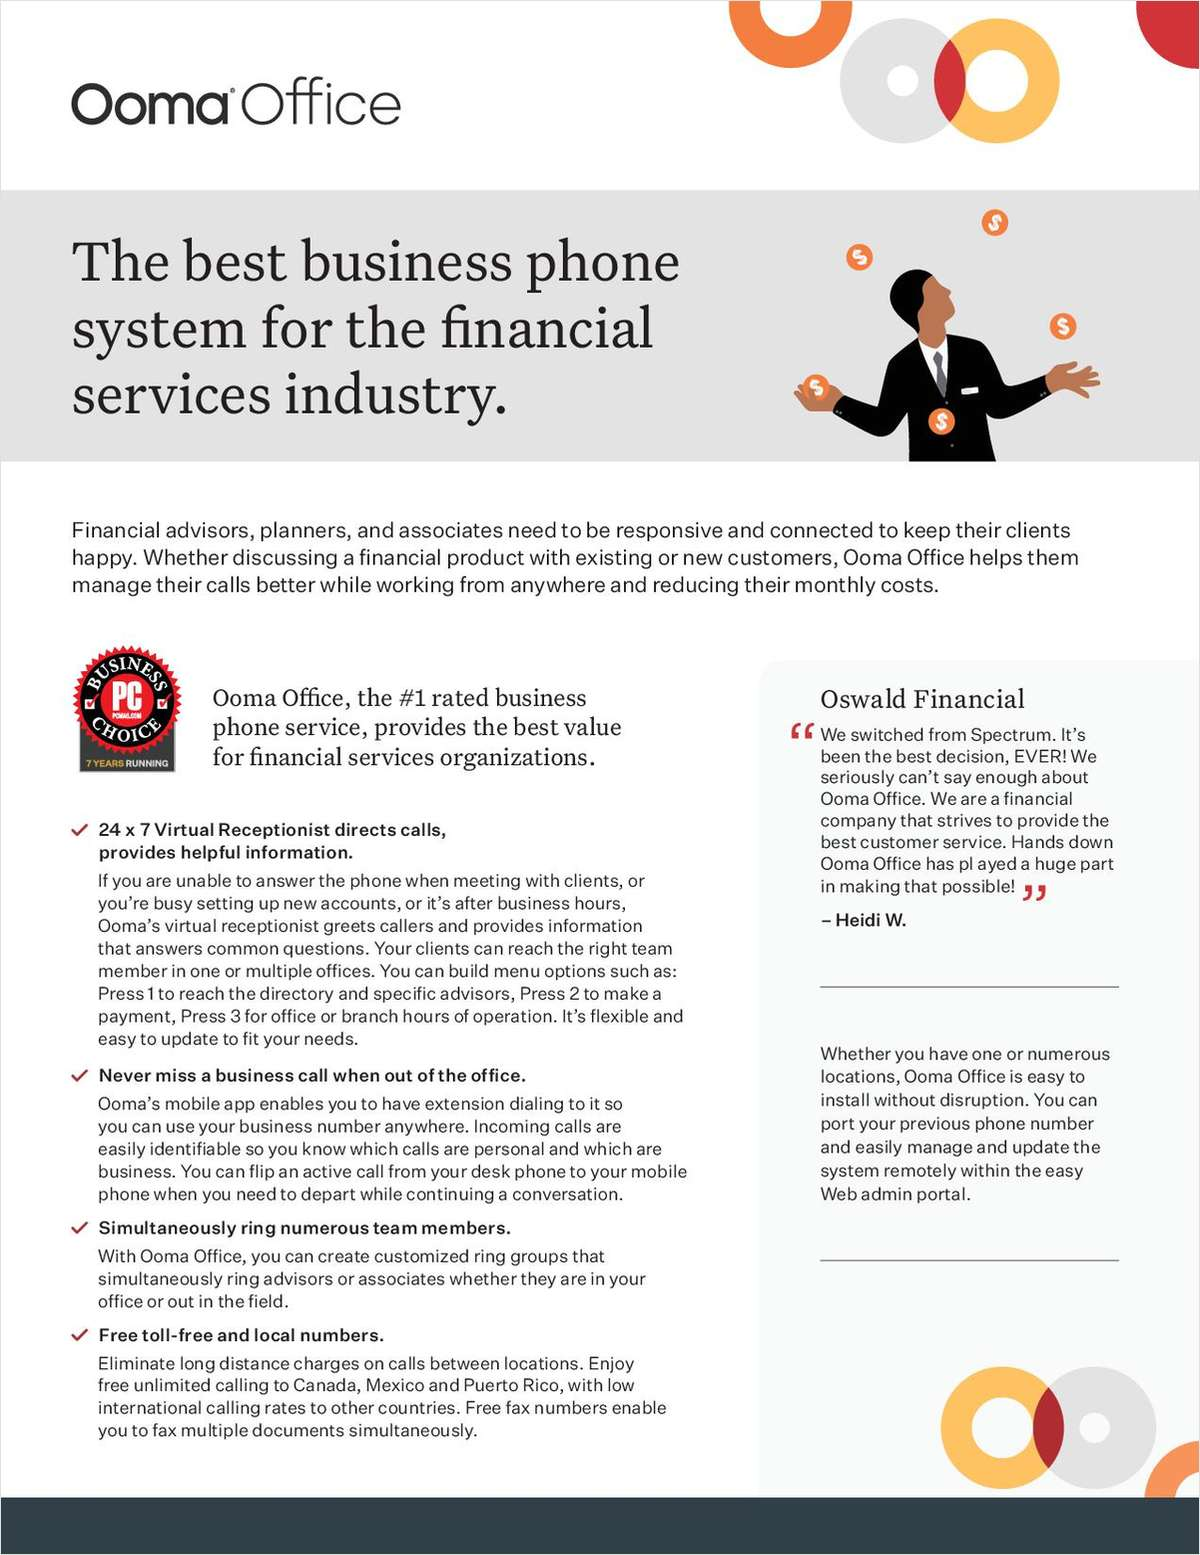 The best business phone system for the financial services industry